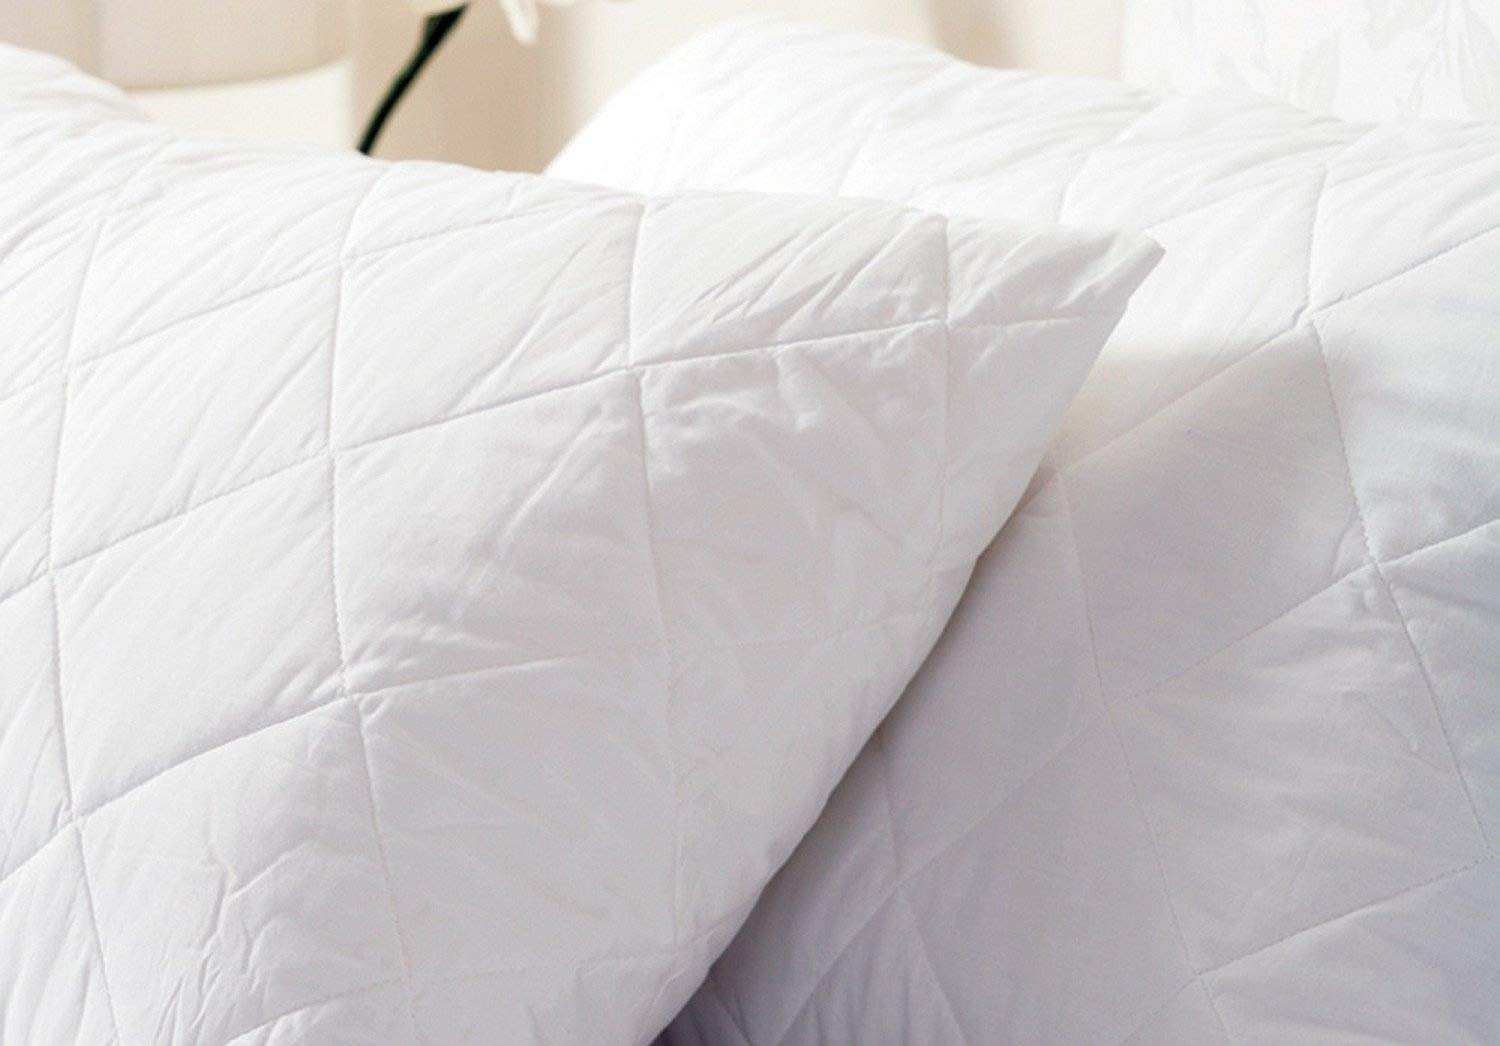 Bid Buy Direct® Pack of 2 Quilted Pillow Protectors | Quilted for Extra Insulation and Protection with Complete 13cm Flap for a Secure Fit - Designed to Increase Life of your Pillows! Fits All Standard Sized Pillows | Machine Washable (Pack of 2) [Energy